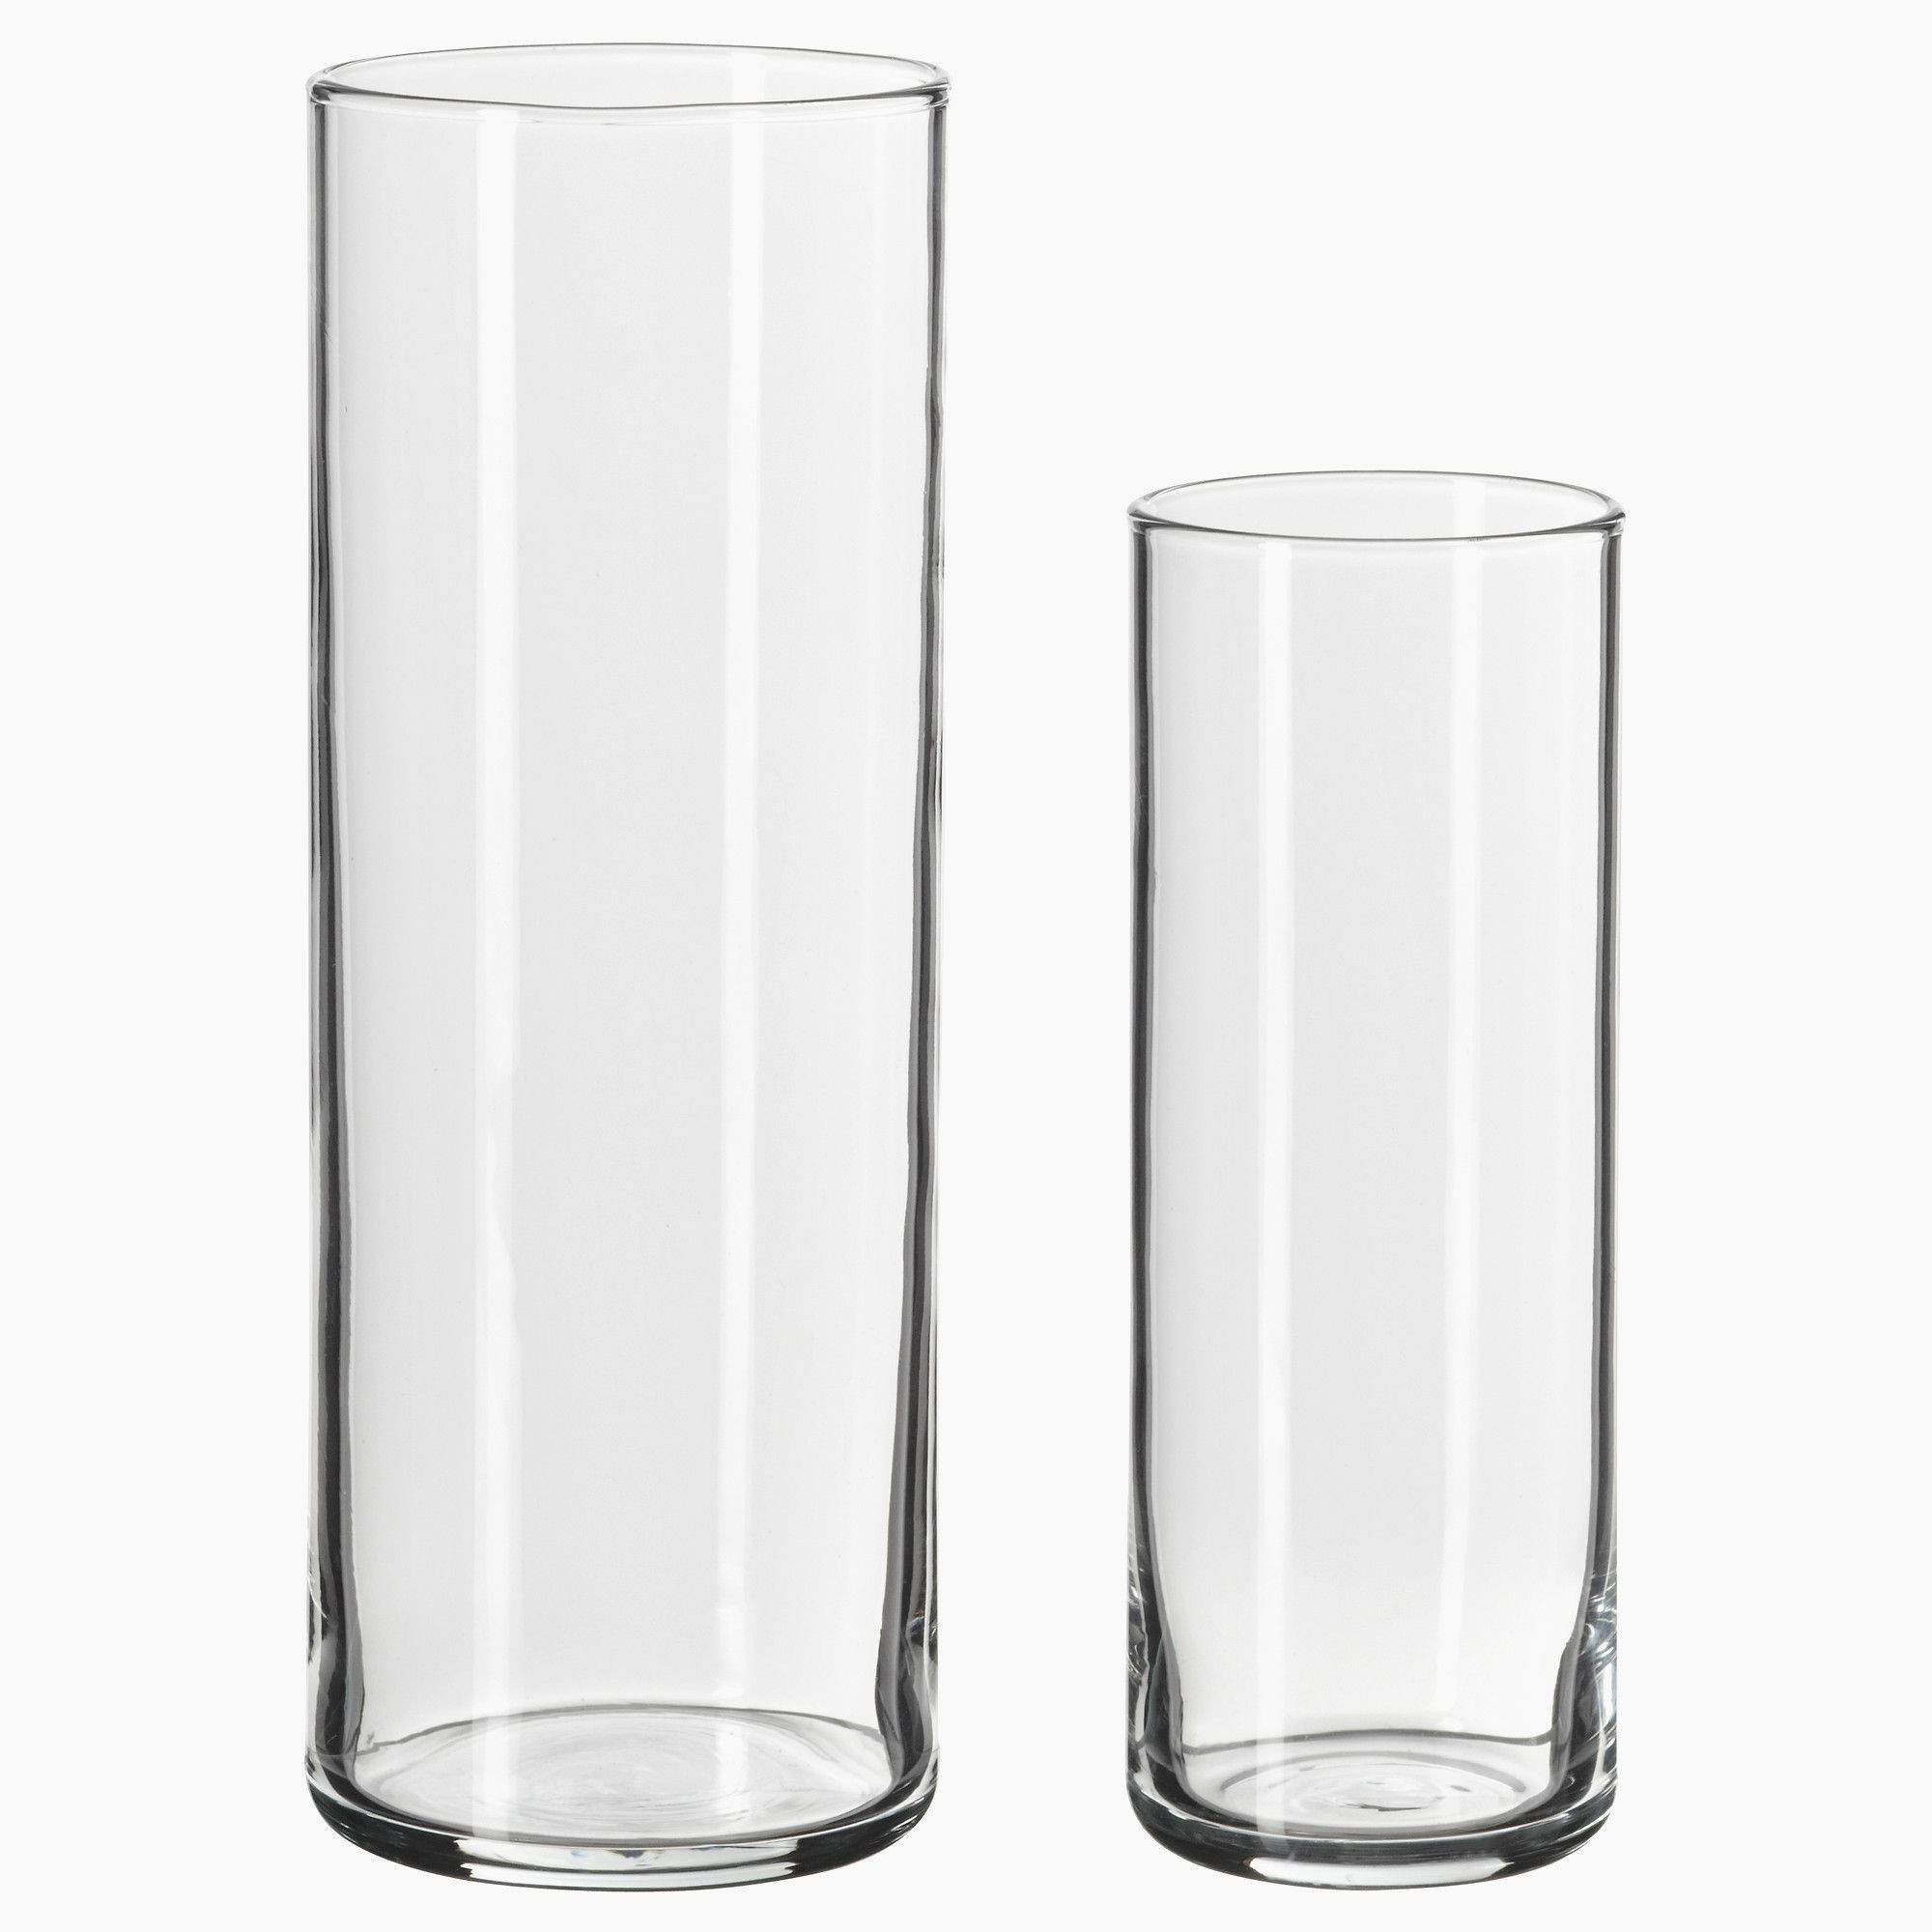 36 tall glass cylinder vases of 24 tall vases for sale the weekly world with wooden wall vase new tall vase centerpiece ideas vases flowers in